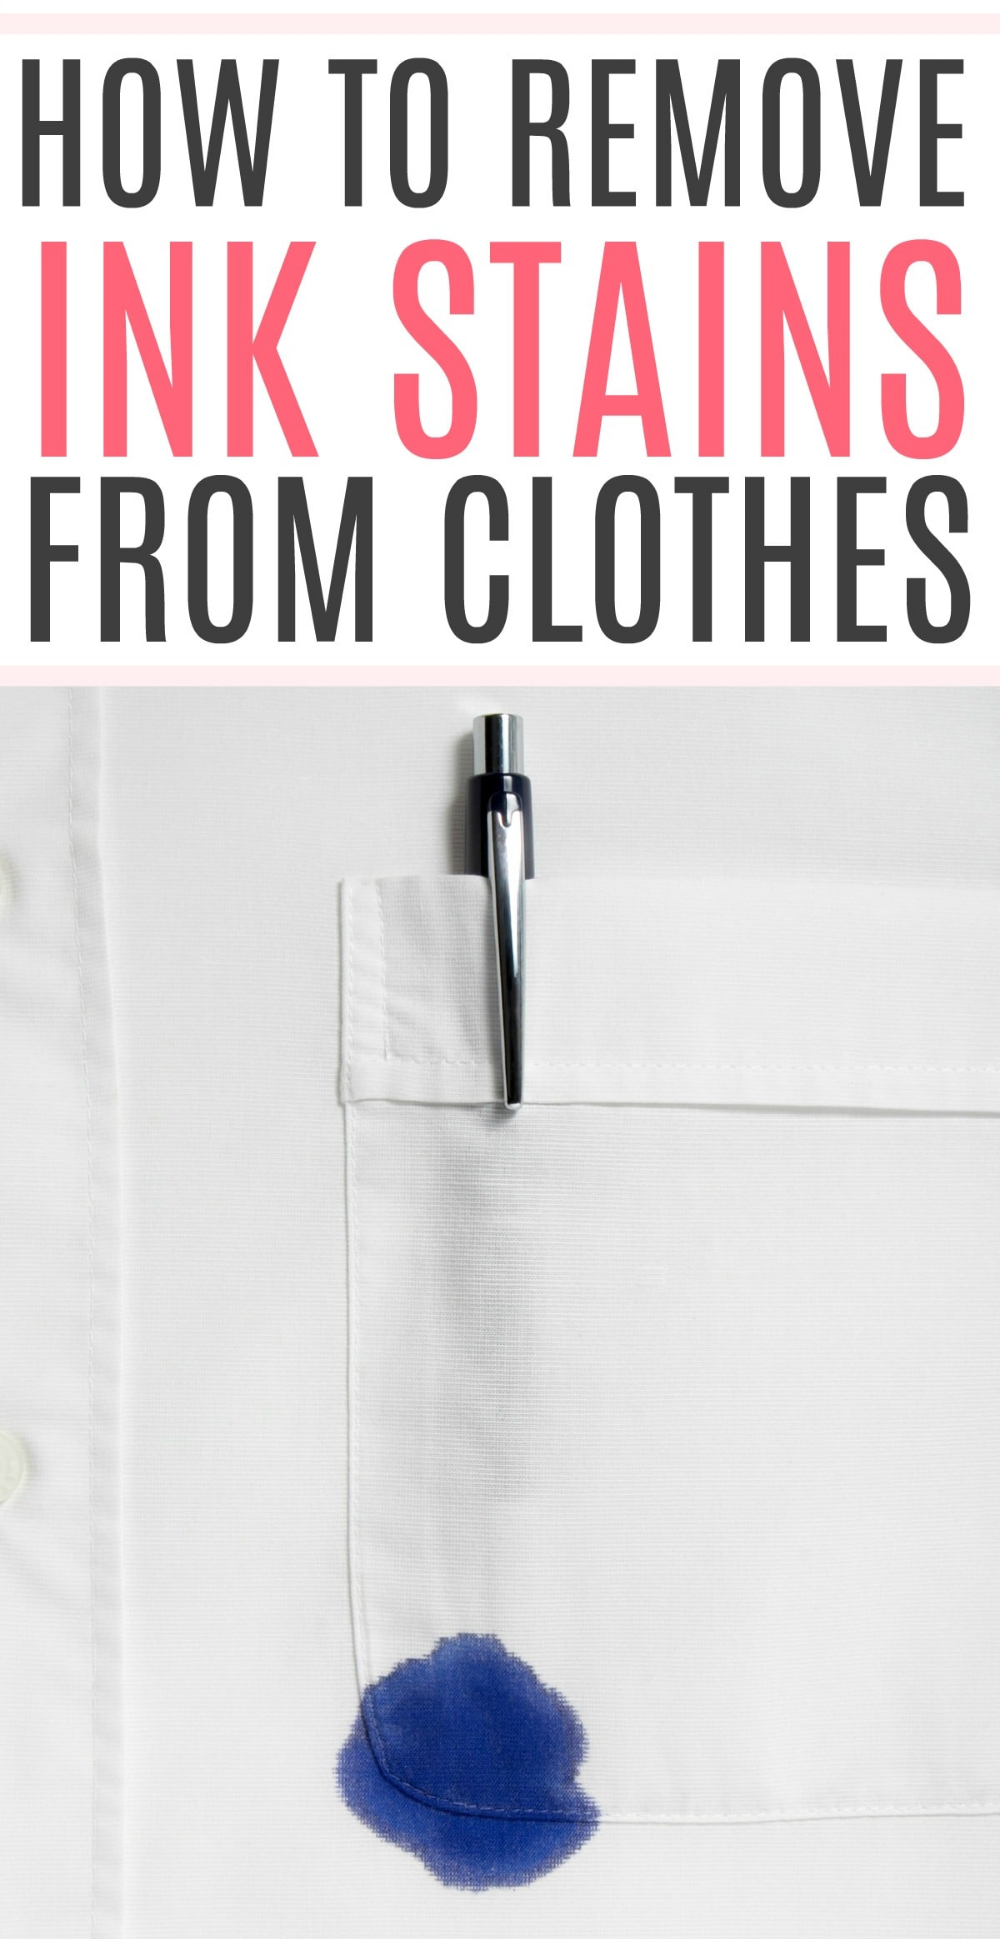 How To Remove Ink Stains From Clothes Ink Stain Removal Ink